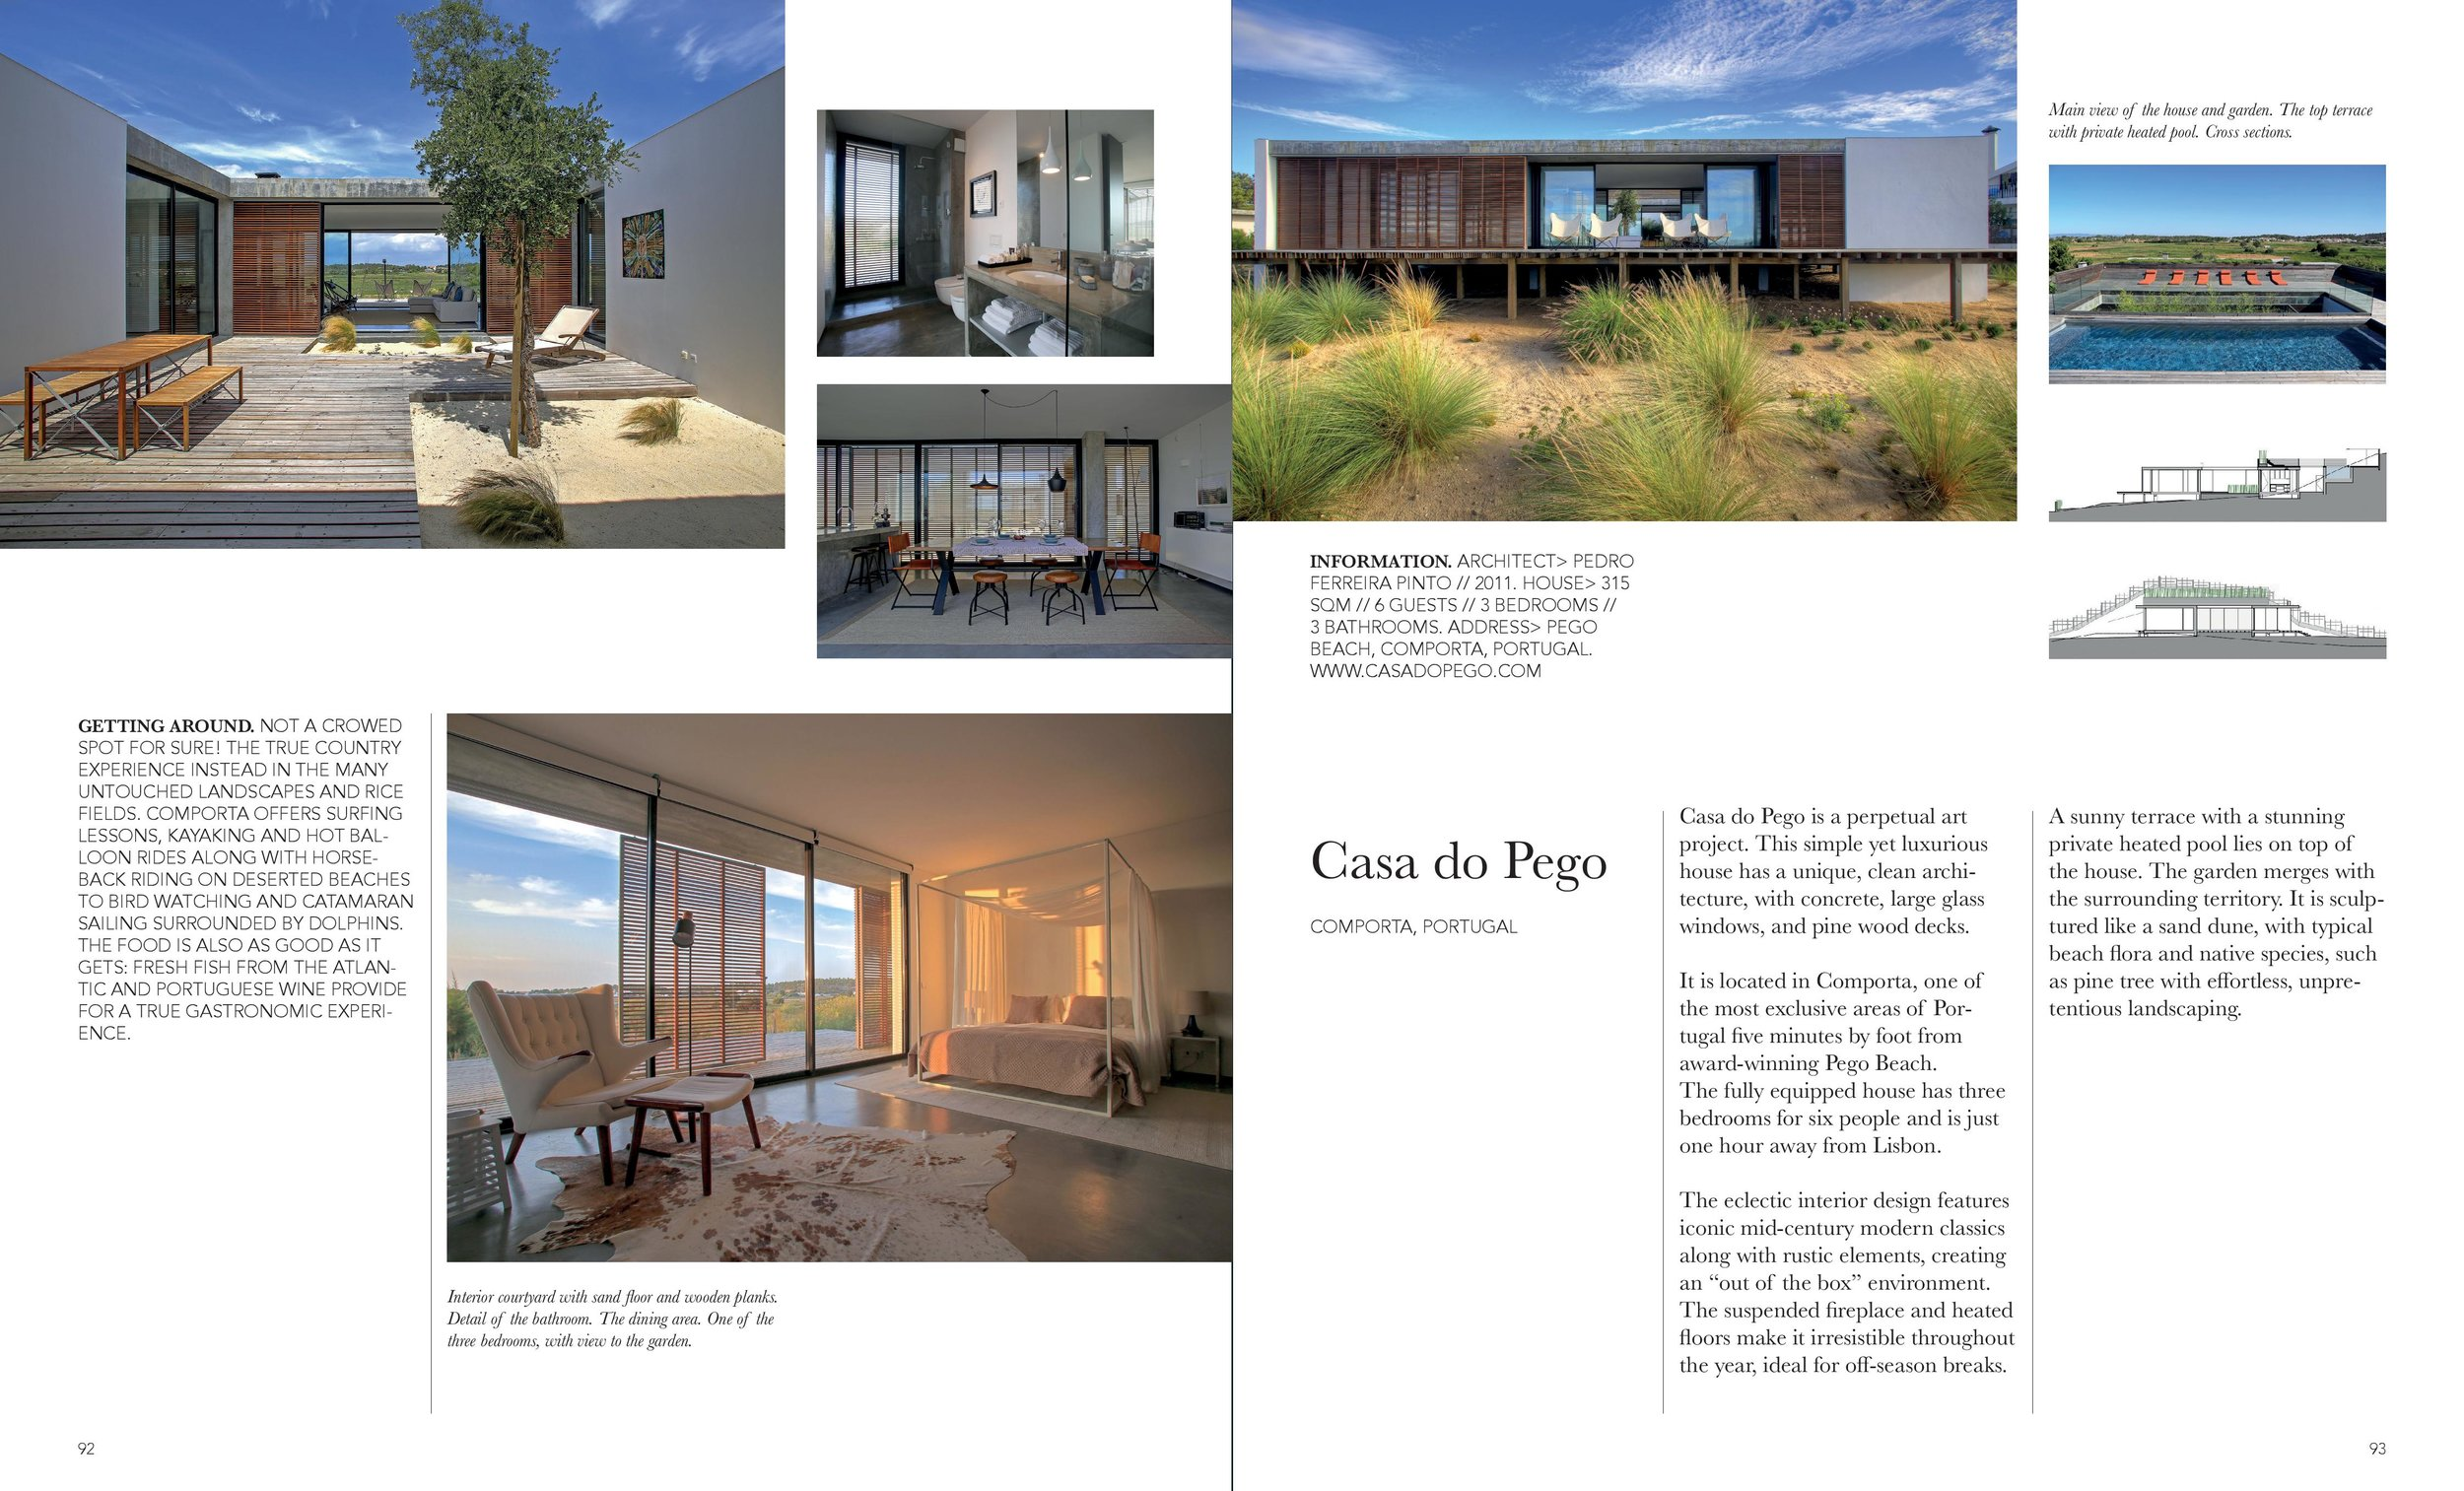 Casa do Pego-Architectural Travel Jewels